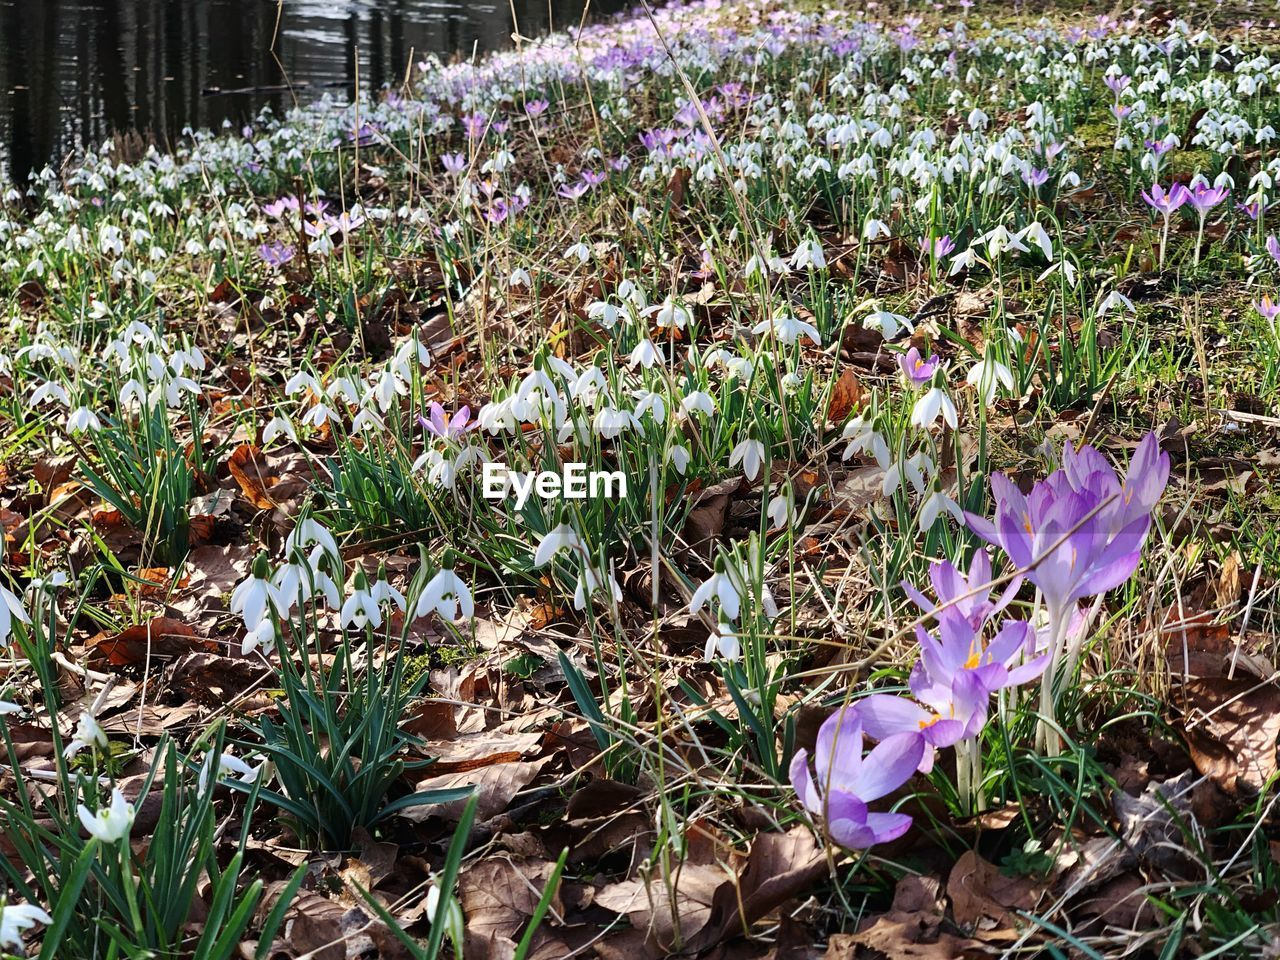 flowering plant, flower, plant, vulnerability, fragility, growth, freshness, beauty in nature, petal, land, nature, field, close-up, purple, no people, day, flower head, springtime, inflorescence, grass, crocus, outdoors, iris, flowerbed